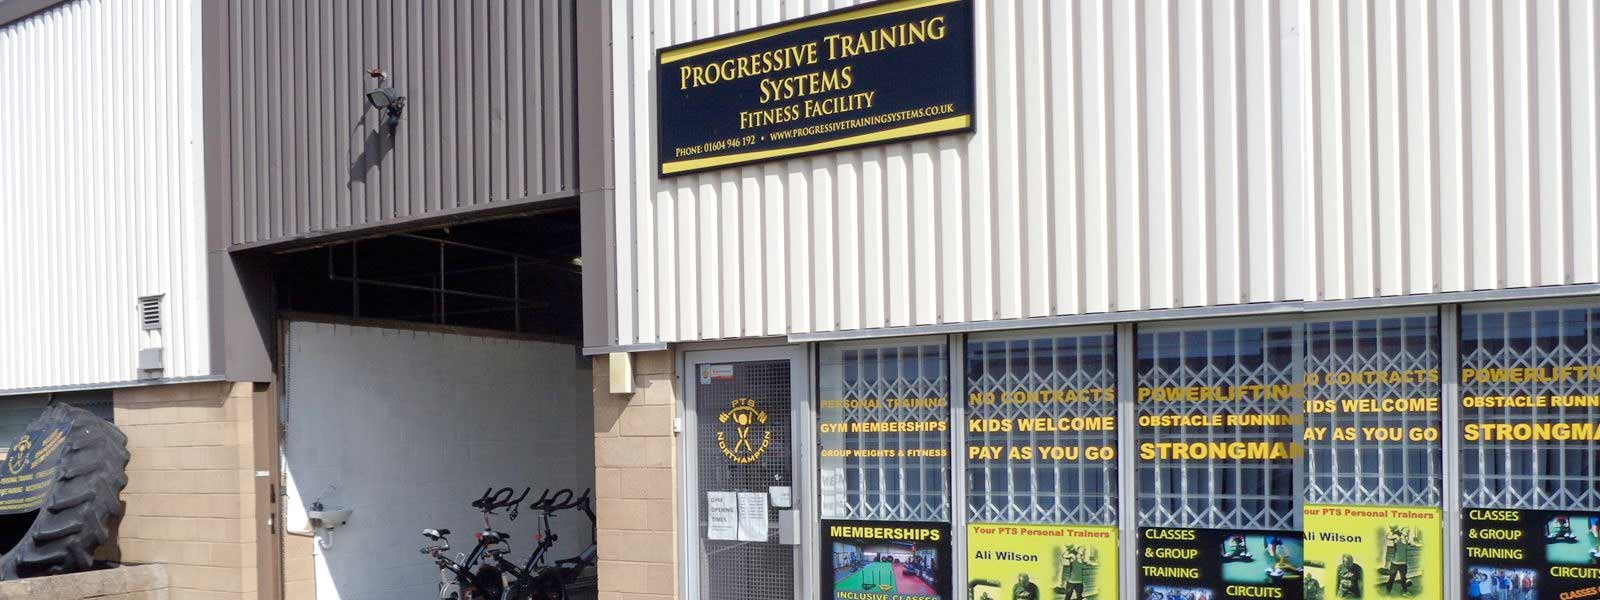 Progressive Training Systems Outside